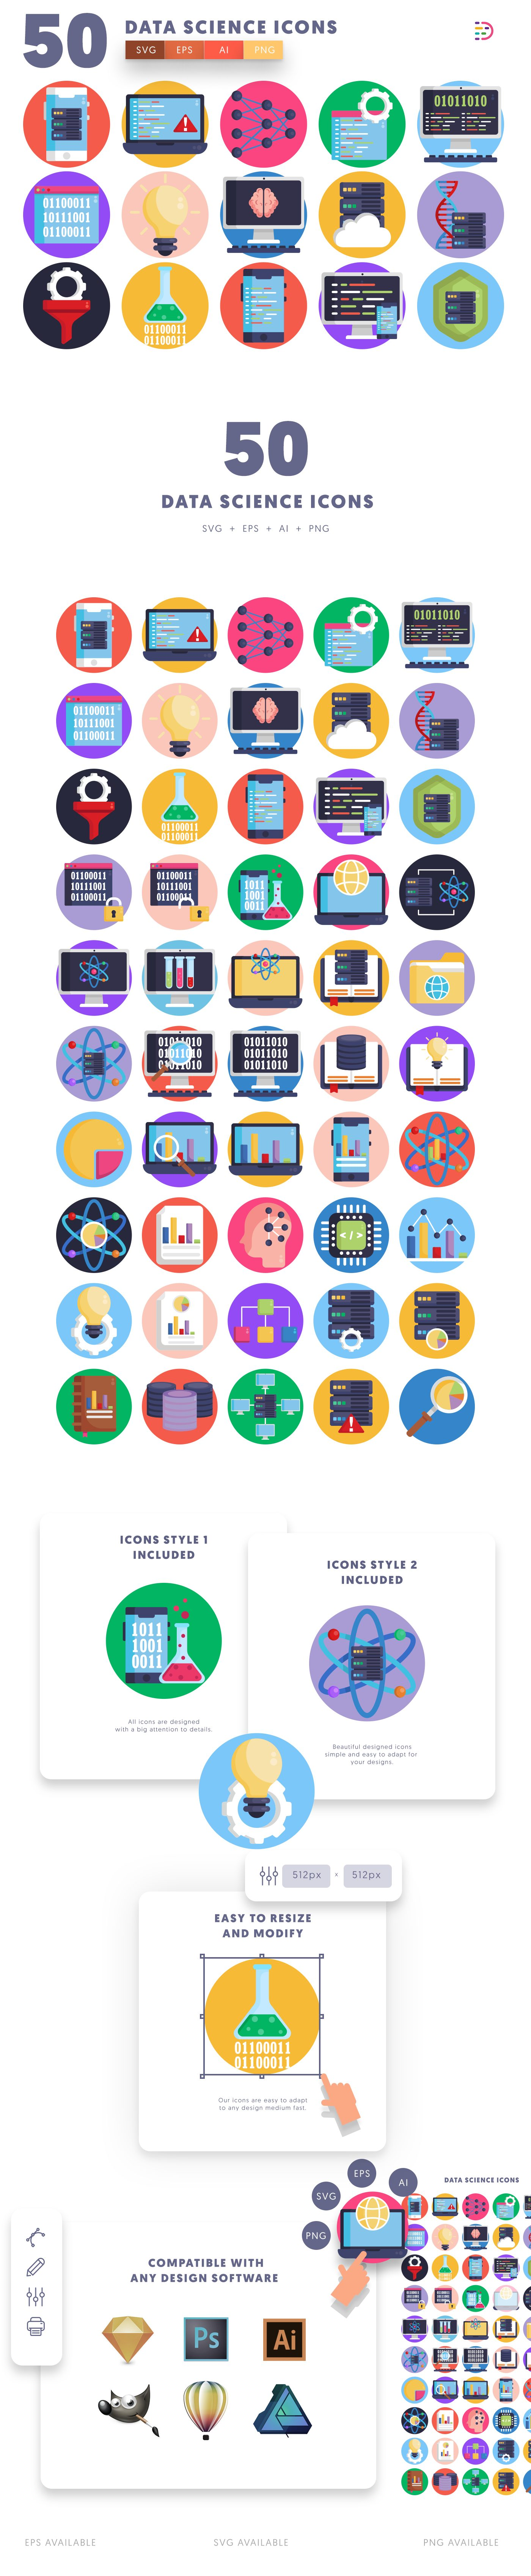 Data Science icons info graphic